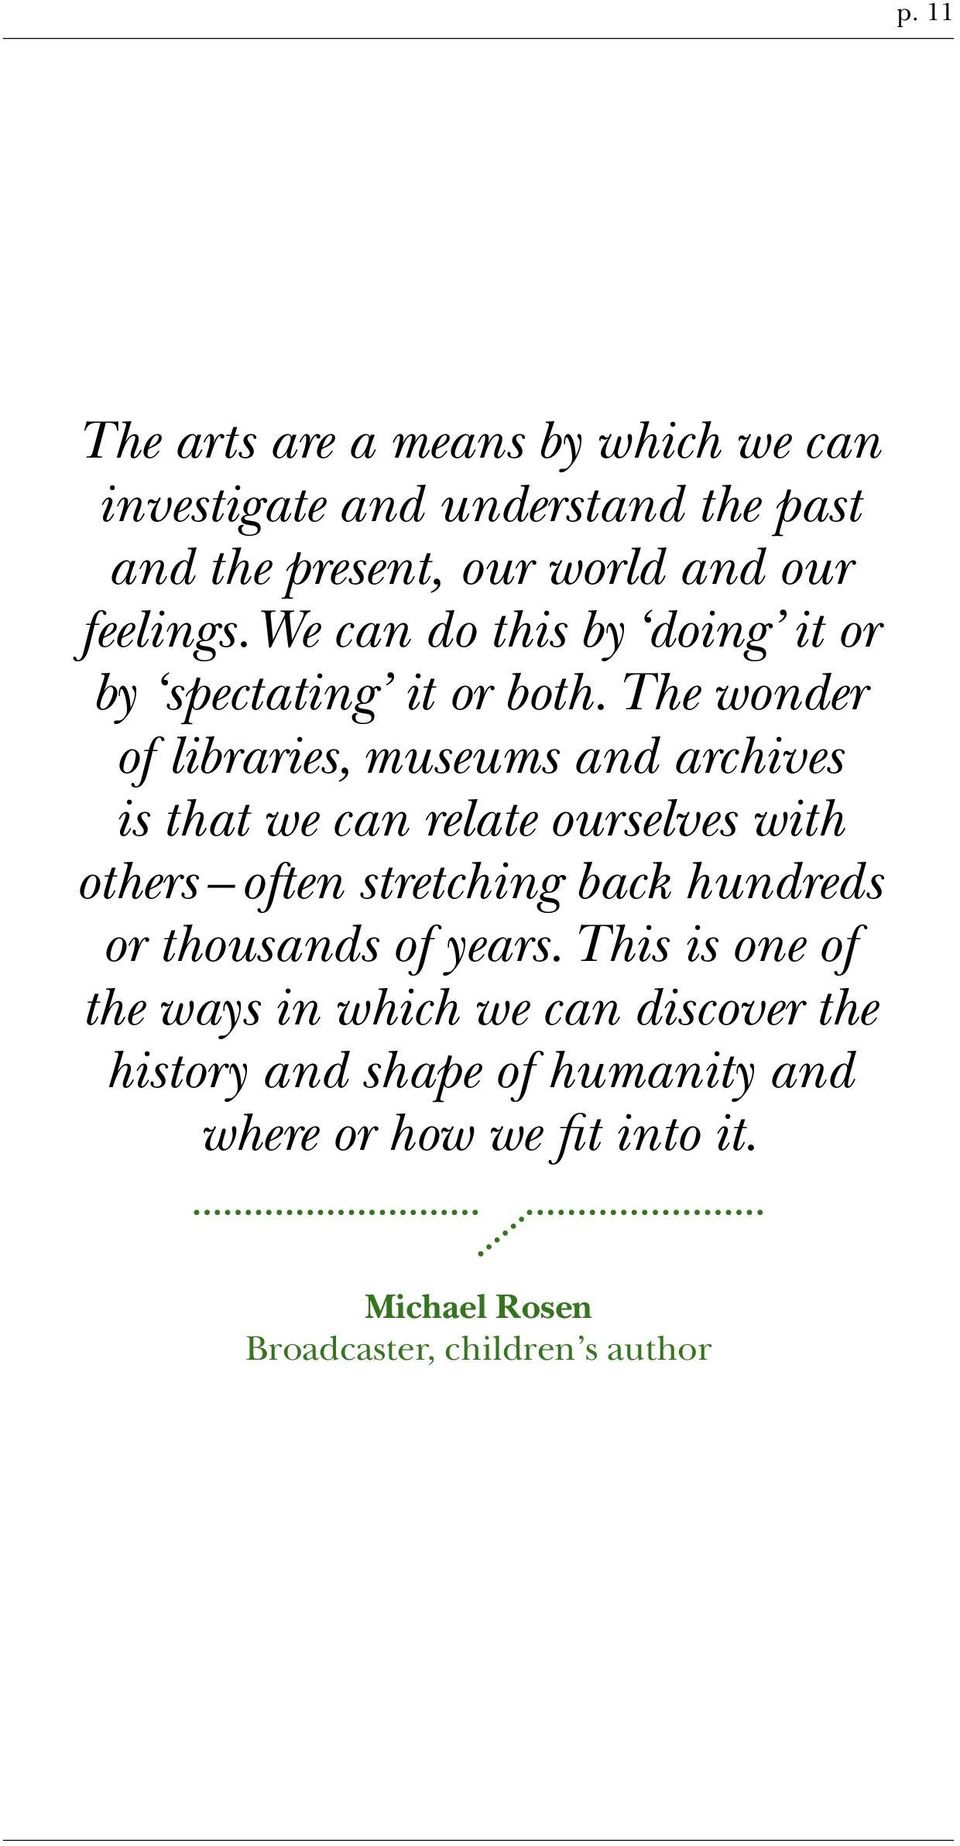 The wonder of libraries, museums and archives is that we can relate ourselves with others often stretching back hundreds